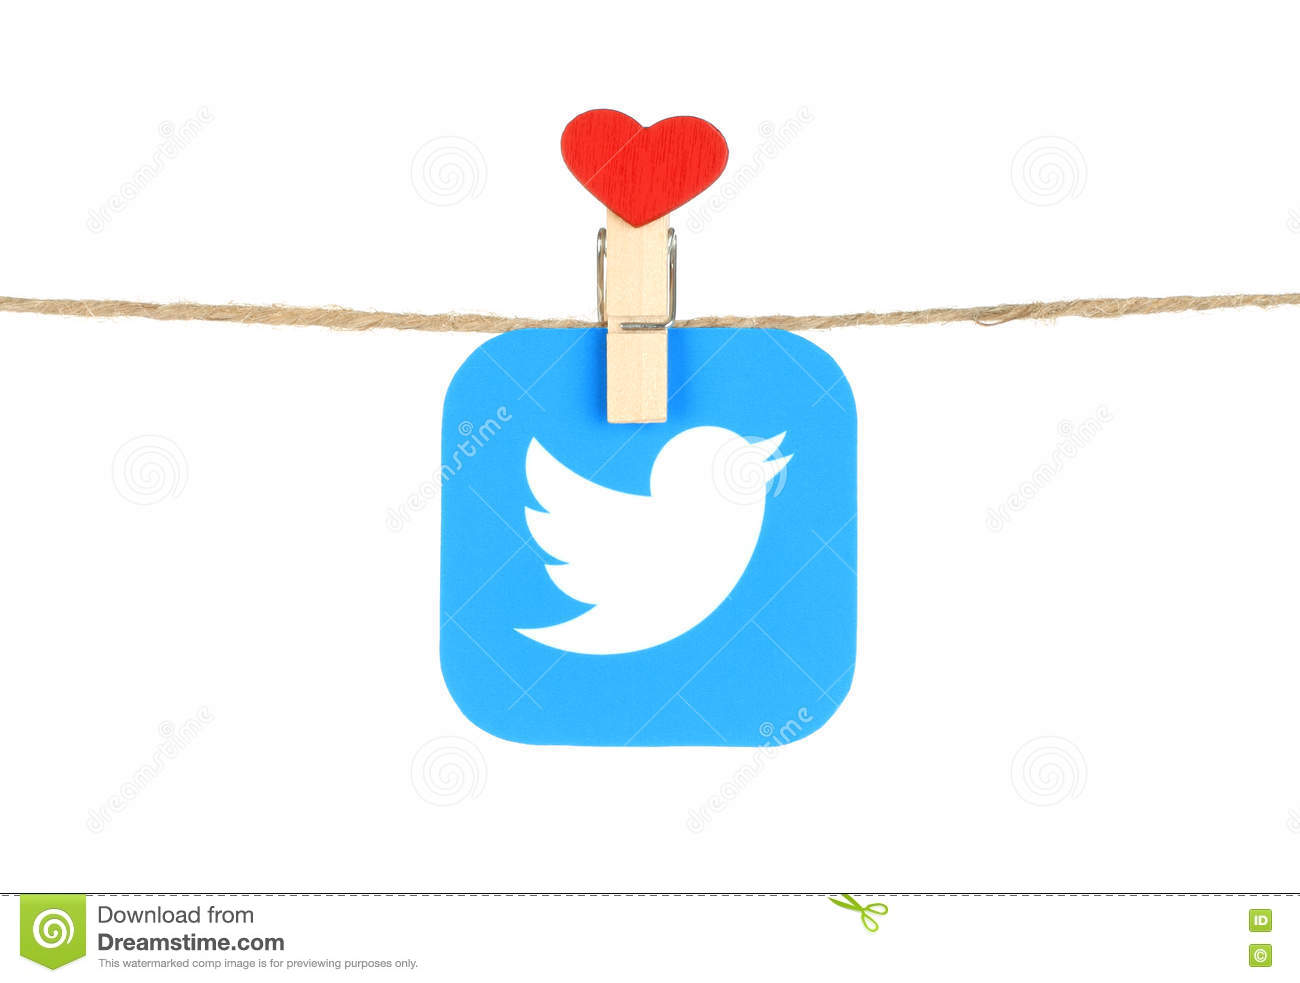 Twitter Logo Printed On Paper Hangind On A Rope With Red Heart